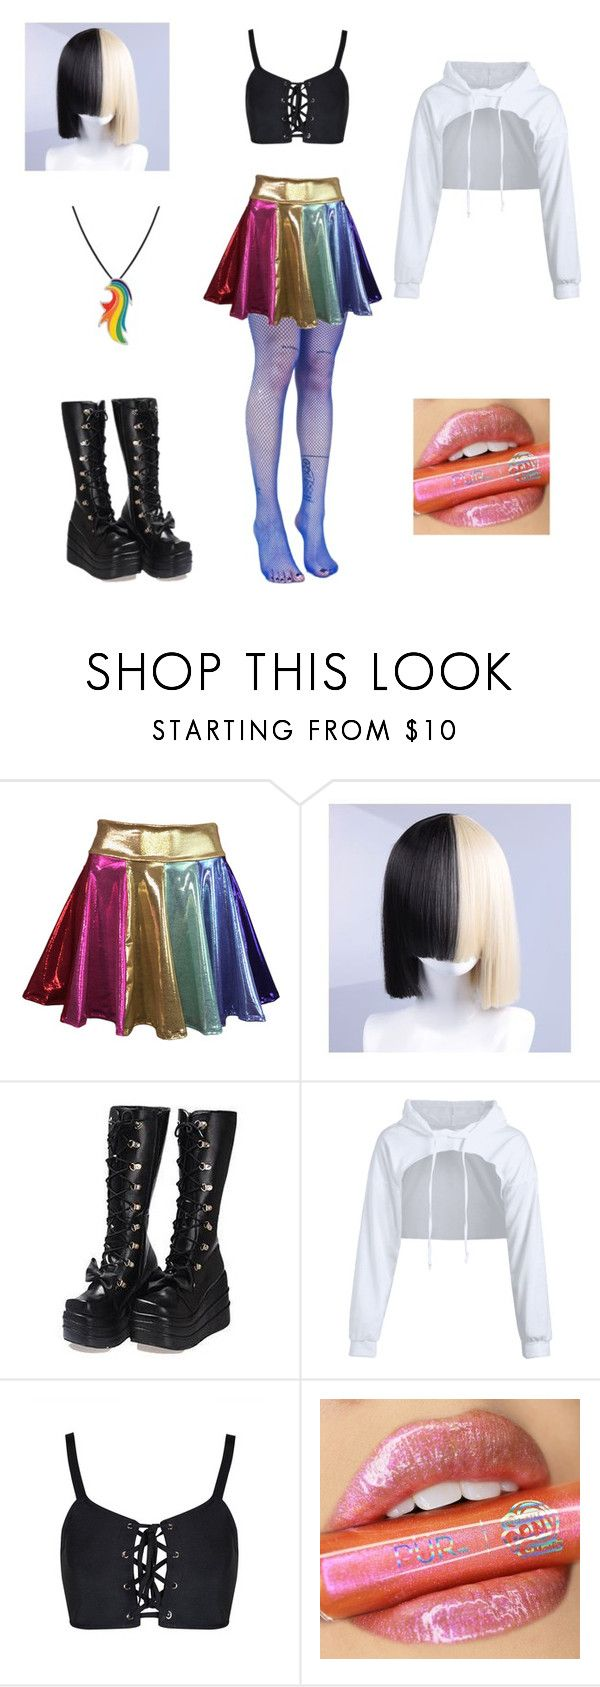 """""Rainbow"" ~ by Sia (My Little Pony movie)"" by valaquenta ❤ liked on Polyvore featuring Coshome and My Little Pony"